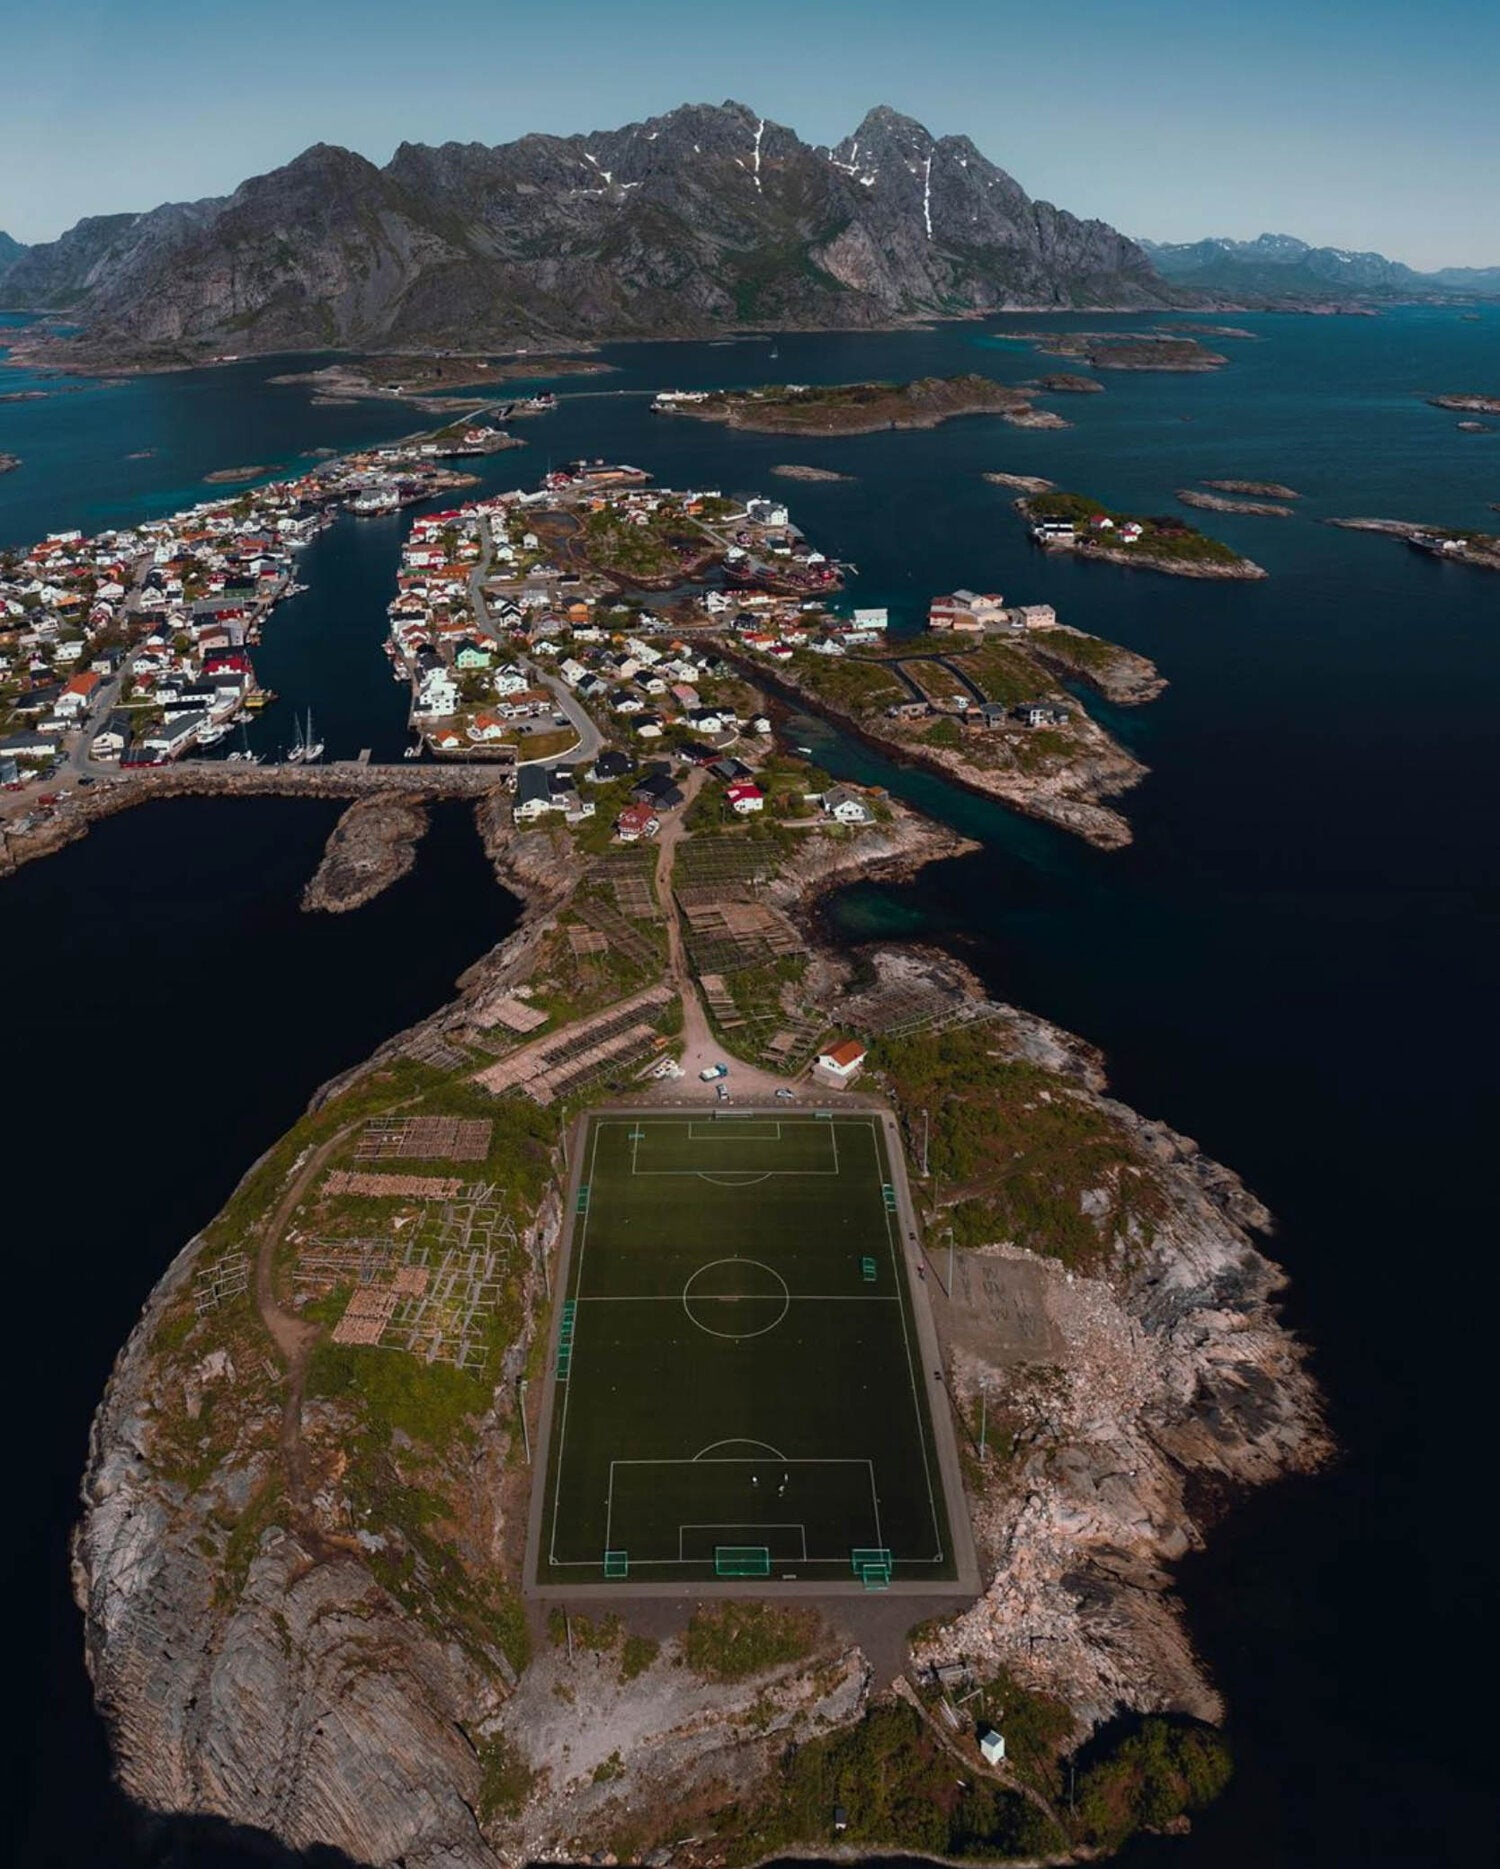 The football pitch in Lofoten, Norway - most unusually located football pitch